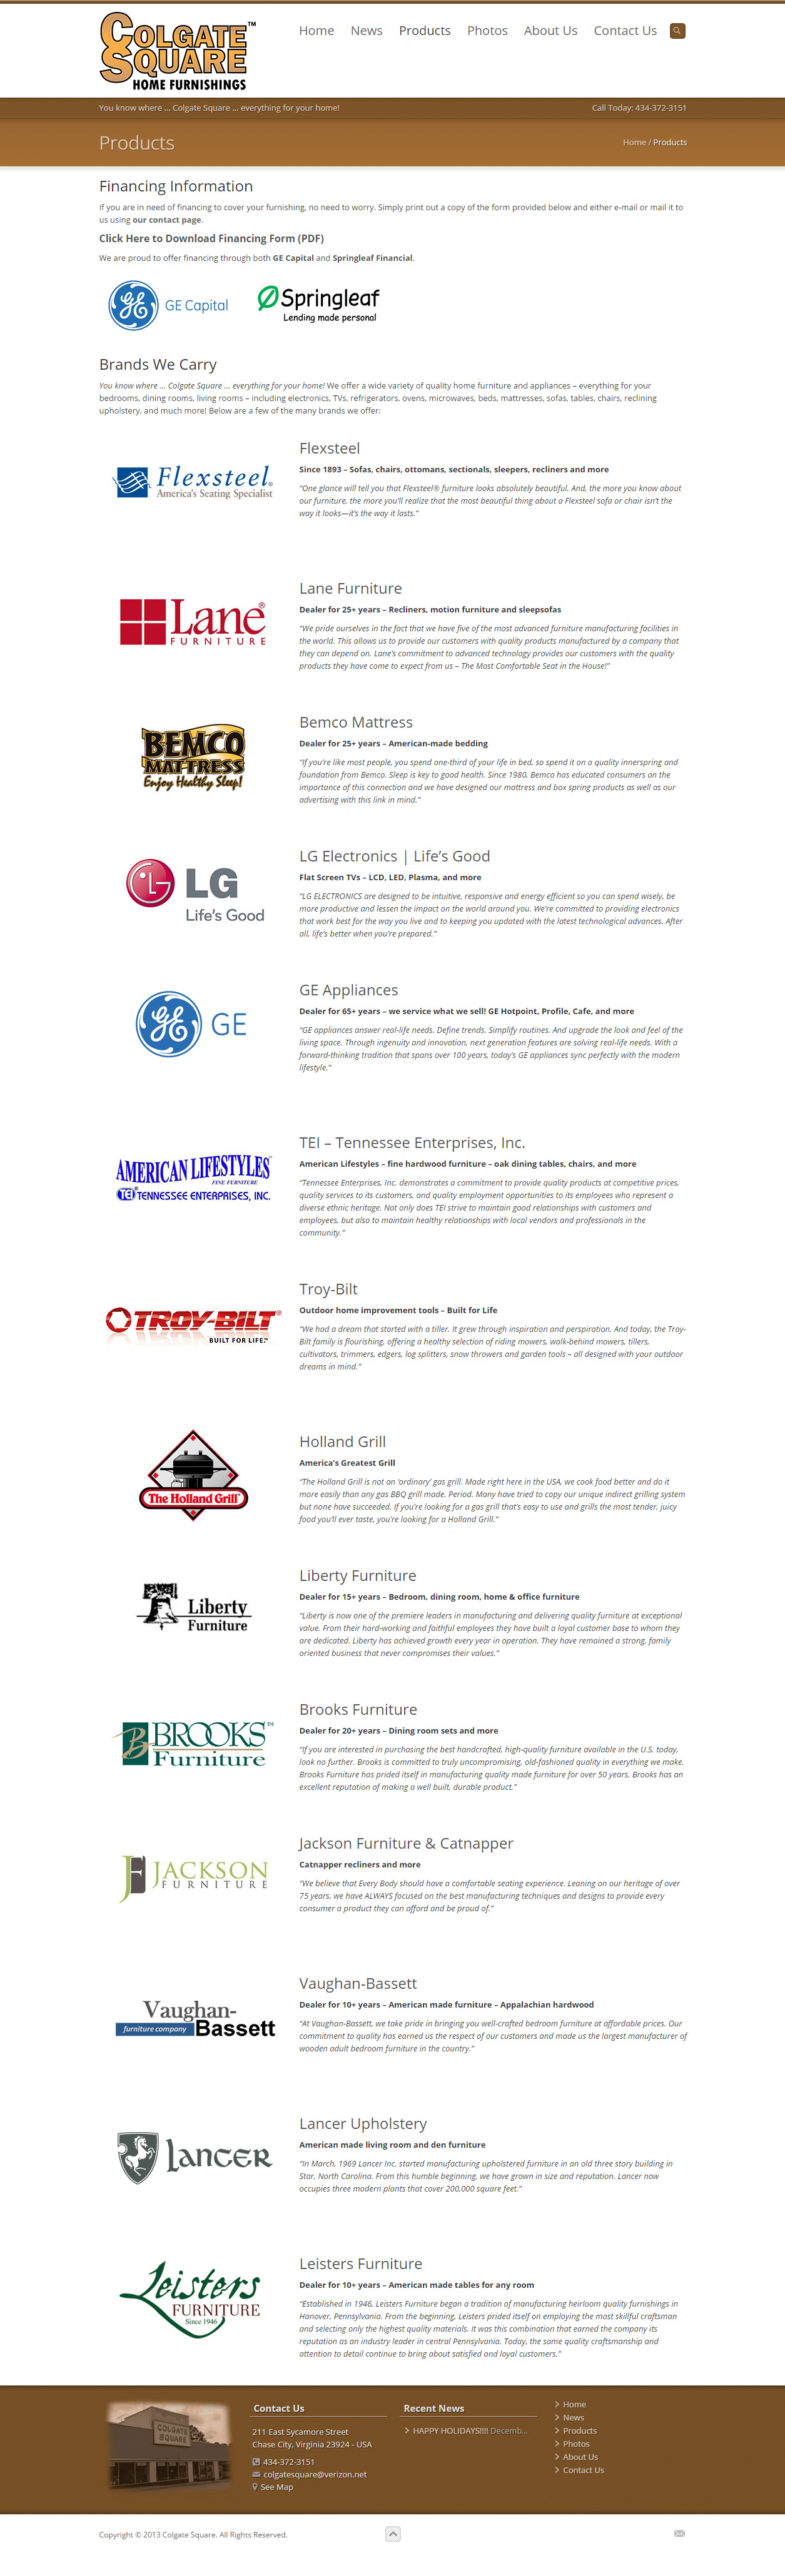 The Products page includes a list of the wide selection of product manufacturers featured at Colgate Square. Each logo is linked to their respective websites.